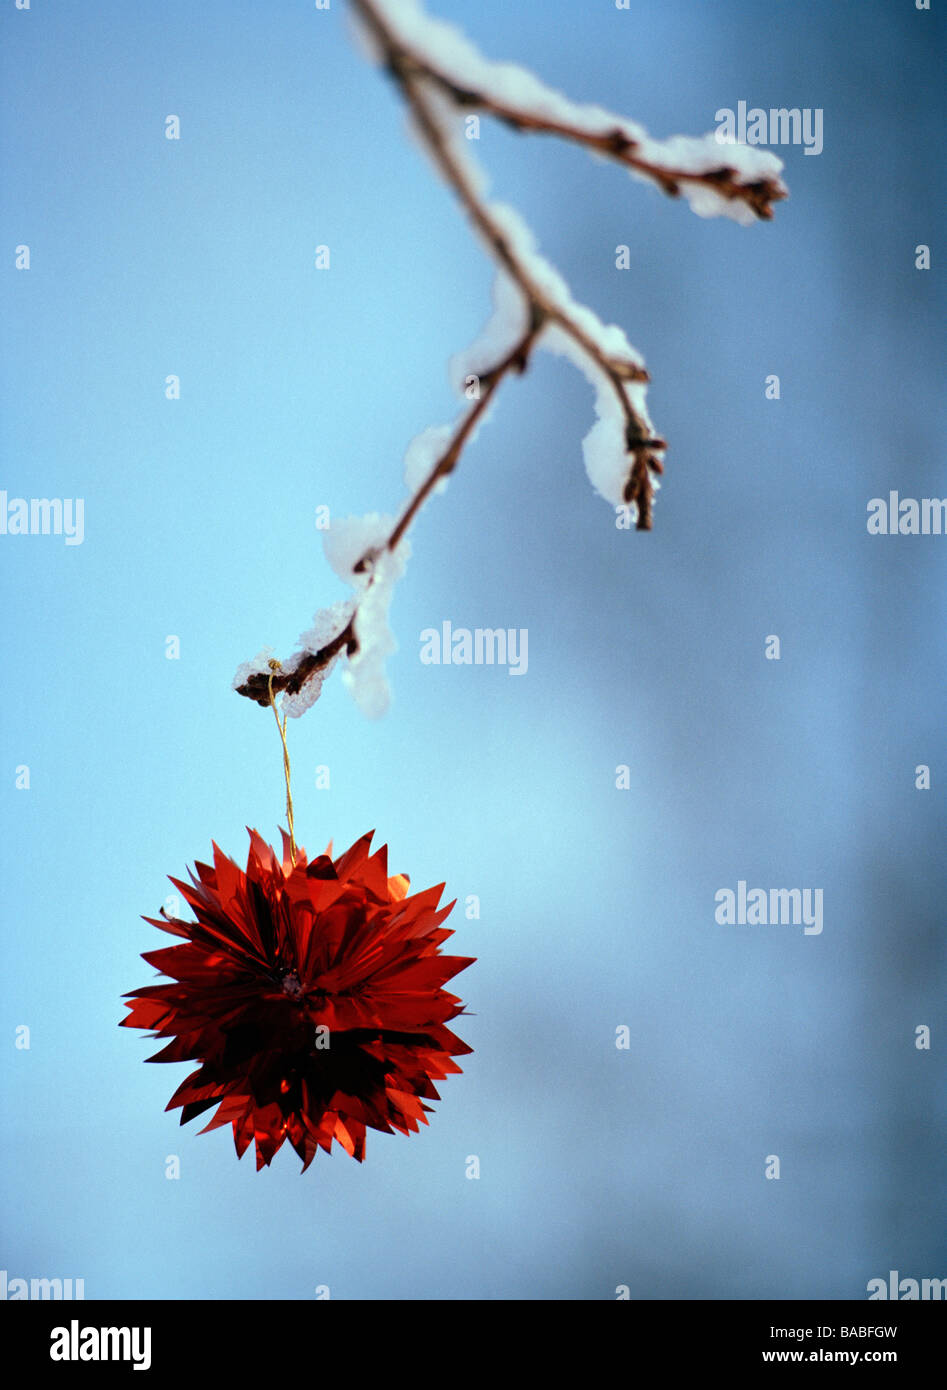 A red Christmas decoration on a snowy branch Sweden - Stock Image